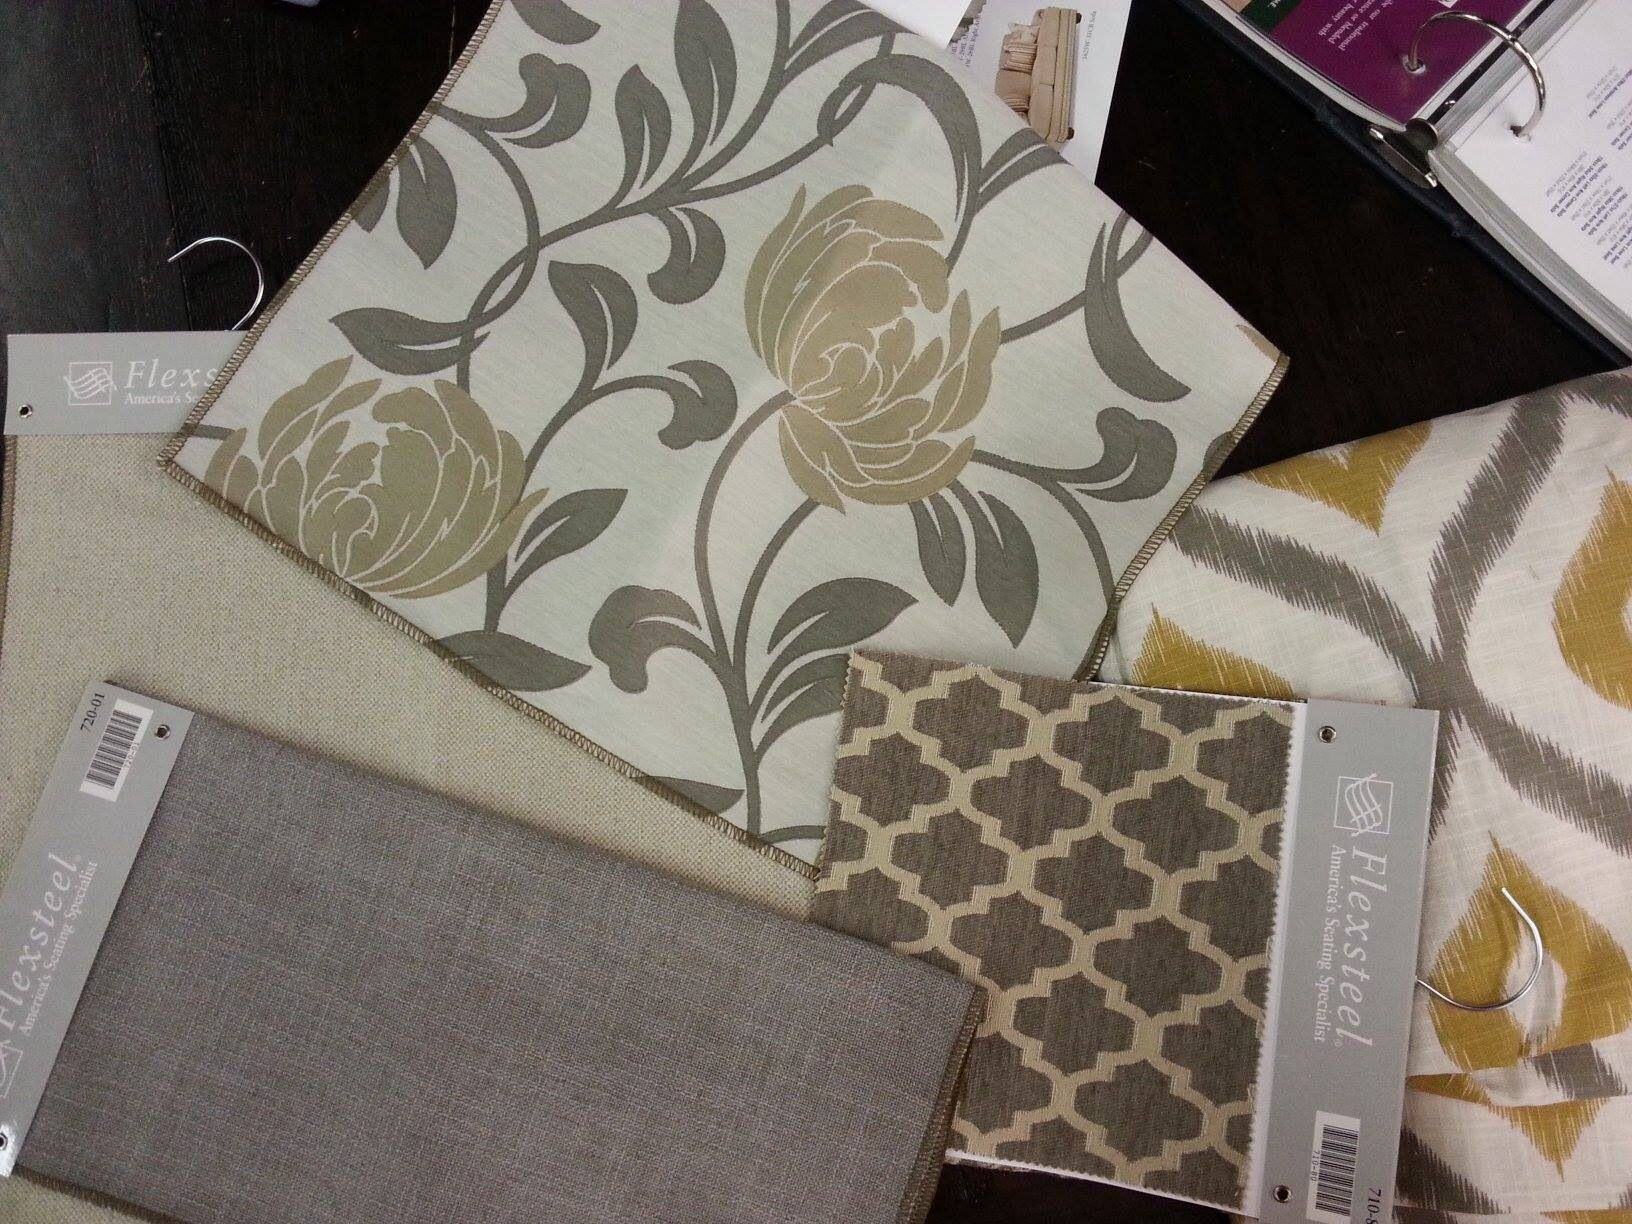 Here are the Flexsteel fabrics I selected Cream for the sofa